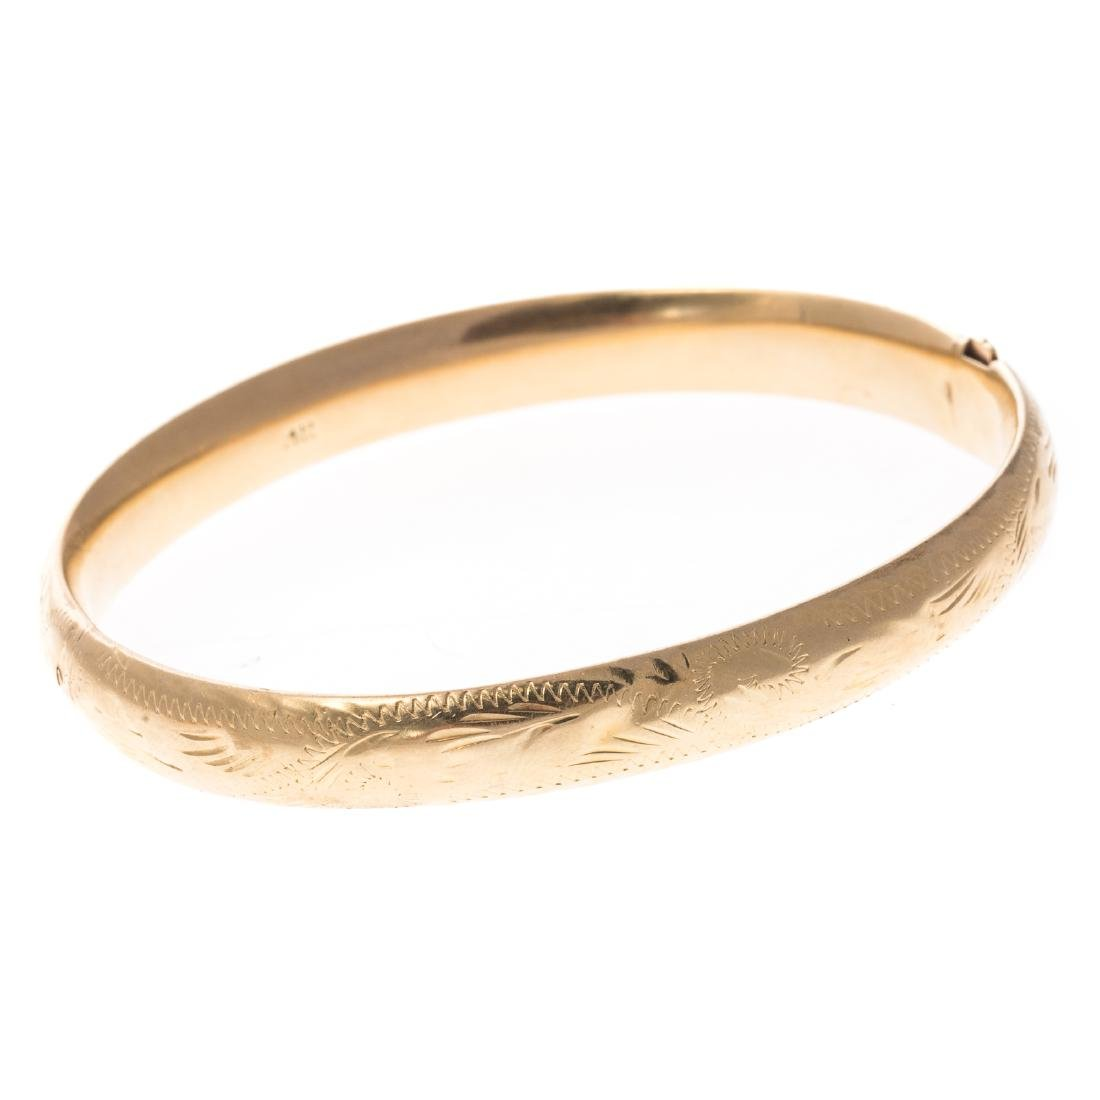 Two Lady's Bracelets in 14K Gold - 8